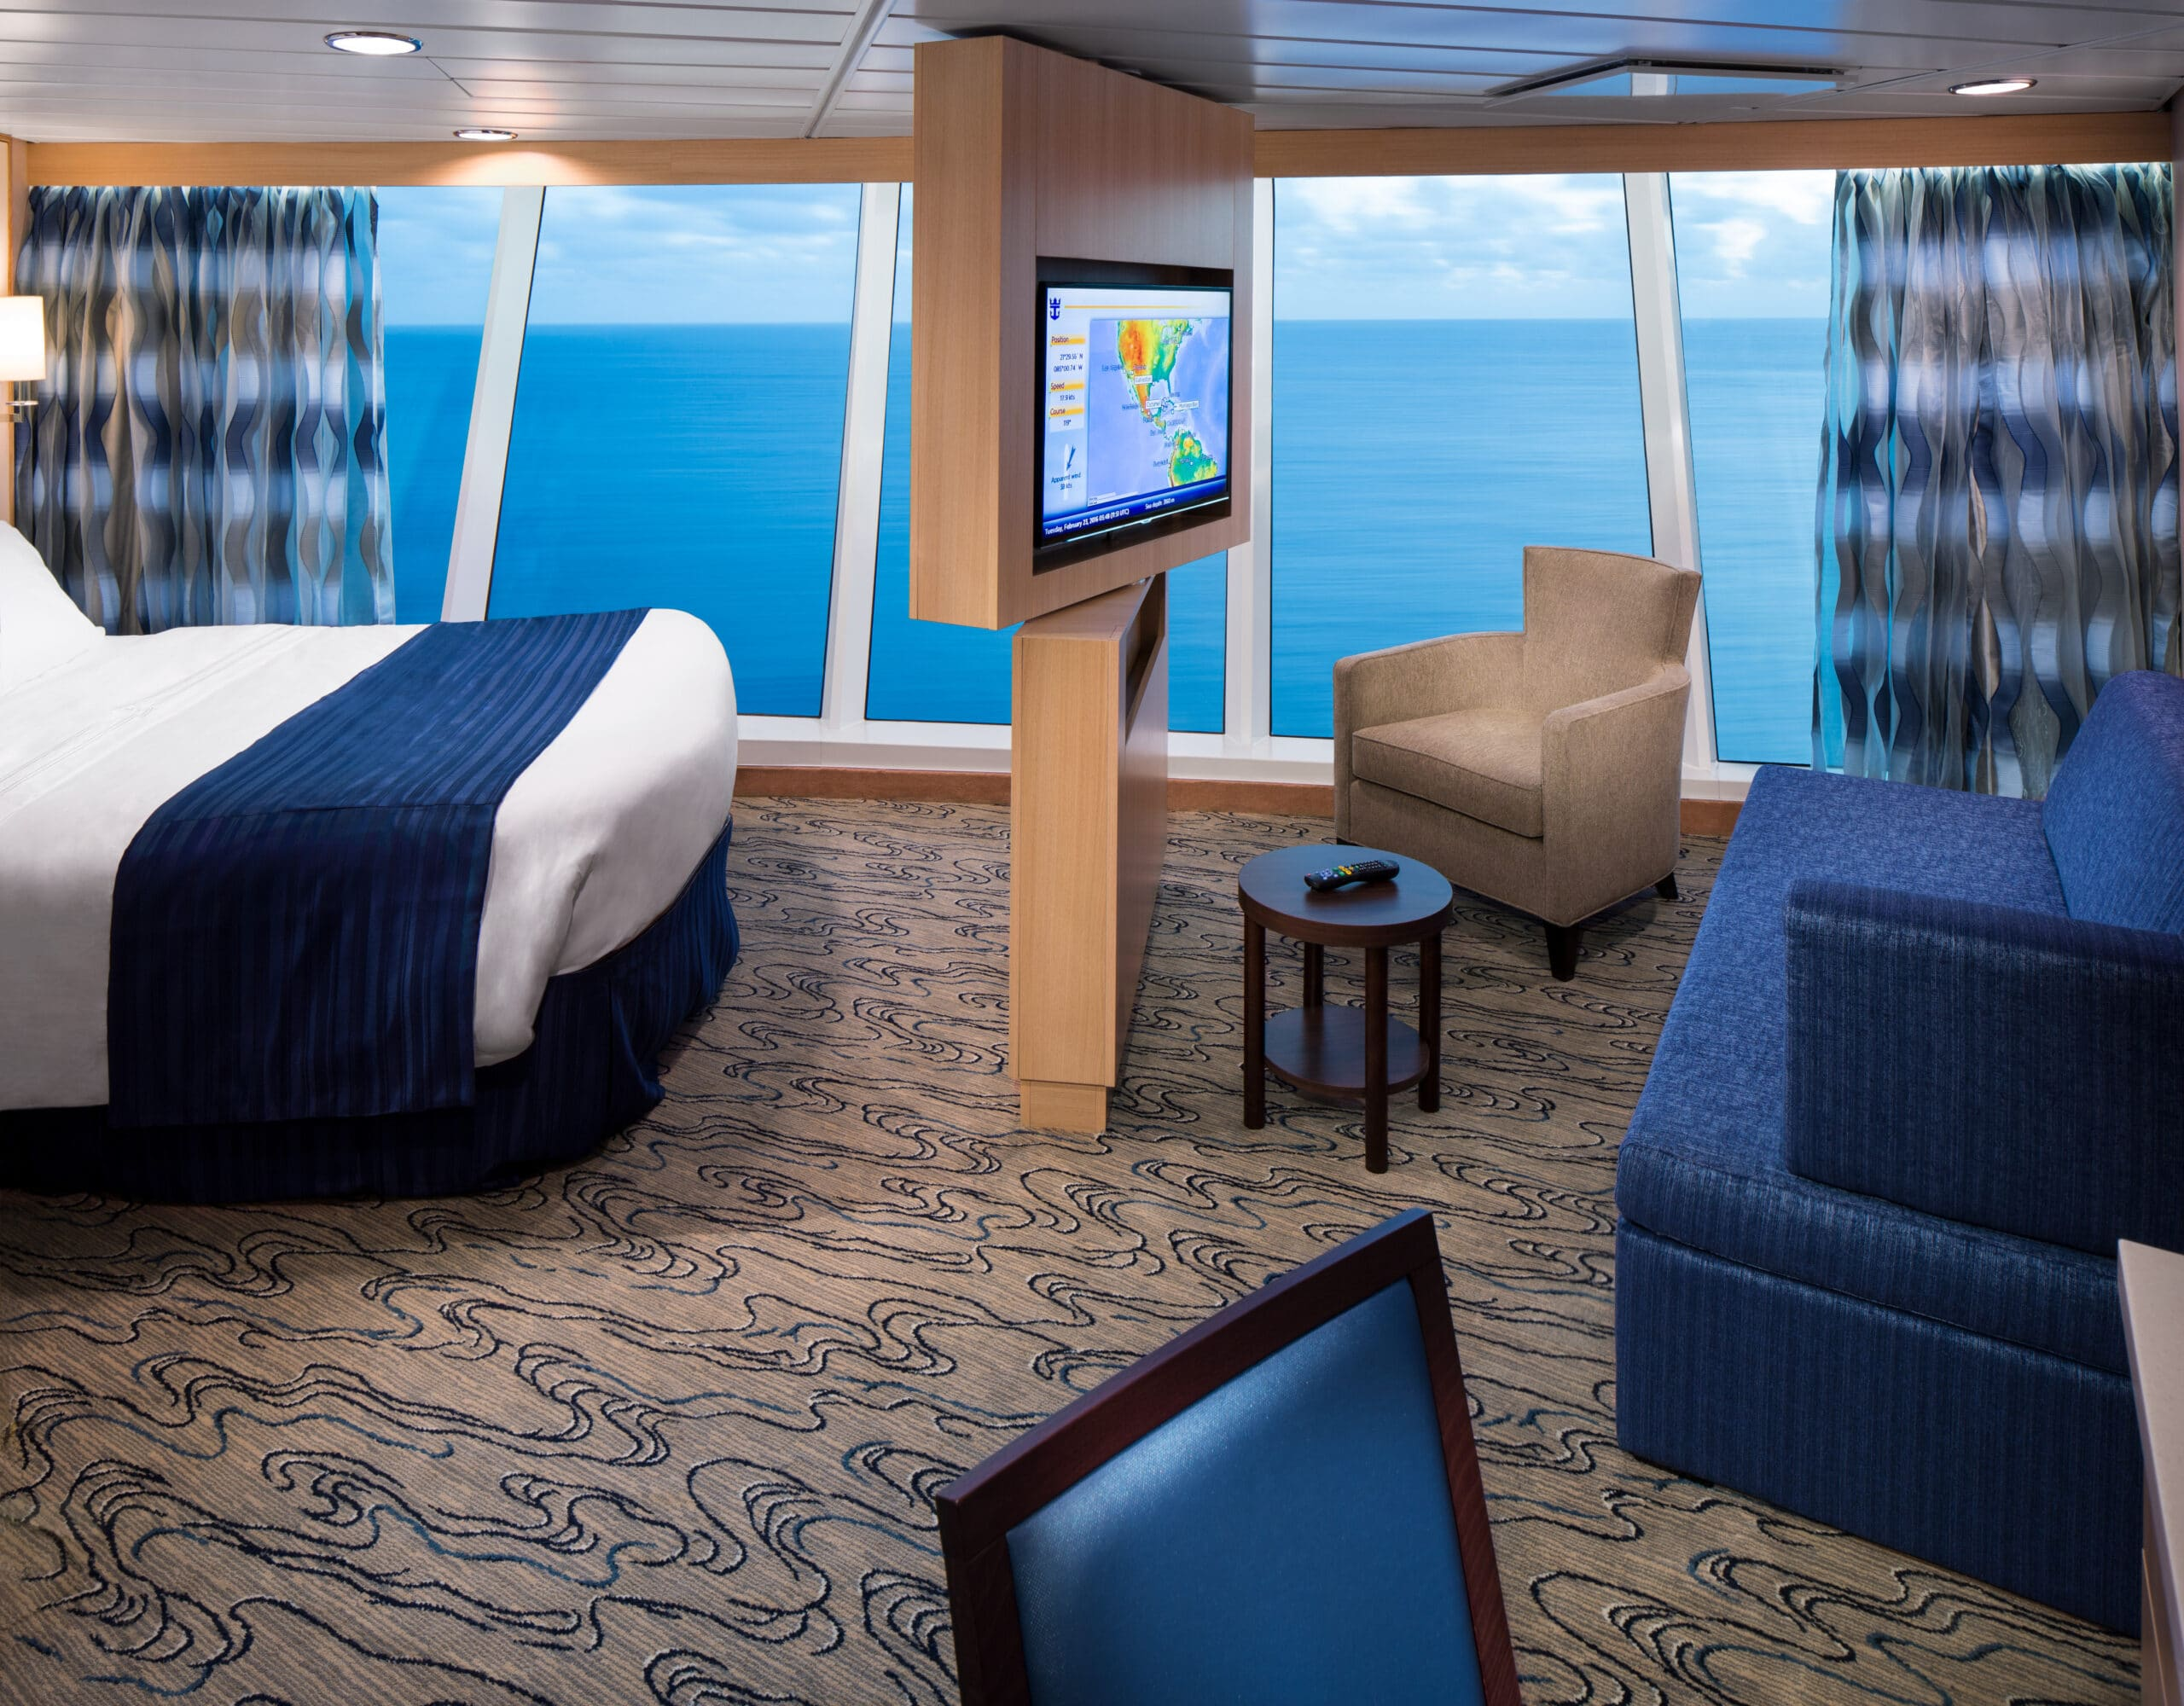 Royal-Caribbean-International-Freedom-of-the-Seas-Liberty-of-the Seas-Independence-of-the-seas-schip-cruiseschip-categorie VP-Panorama Suite